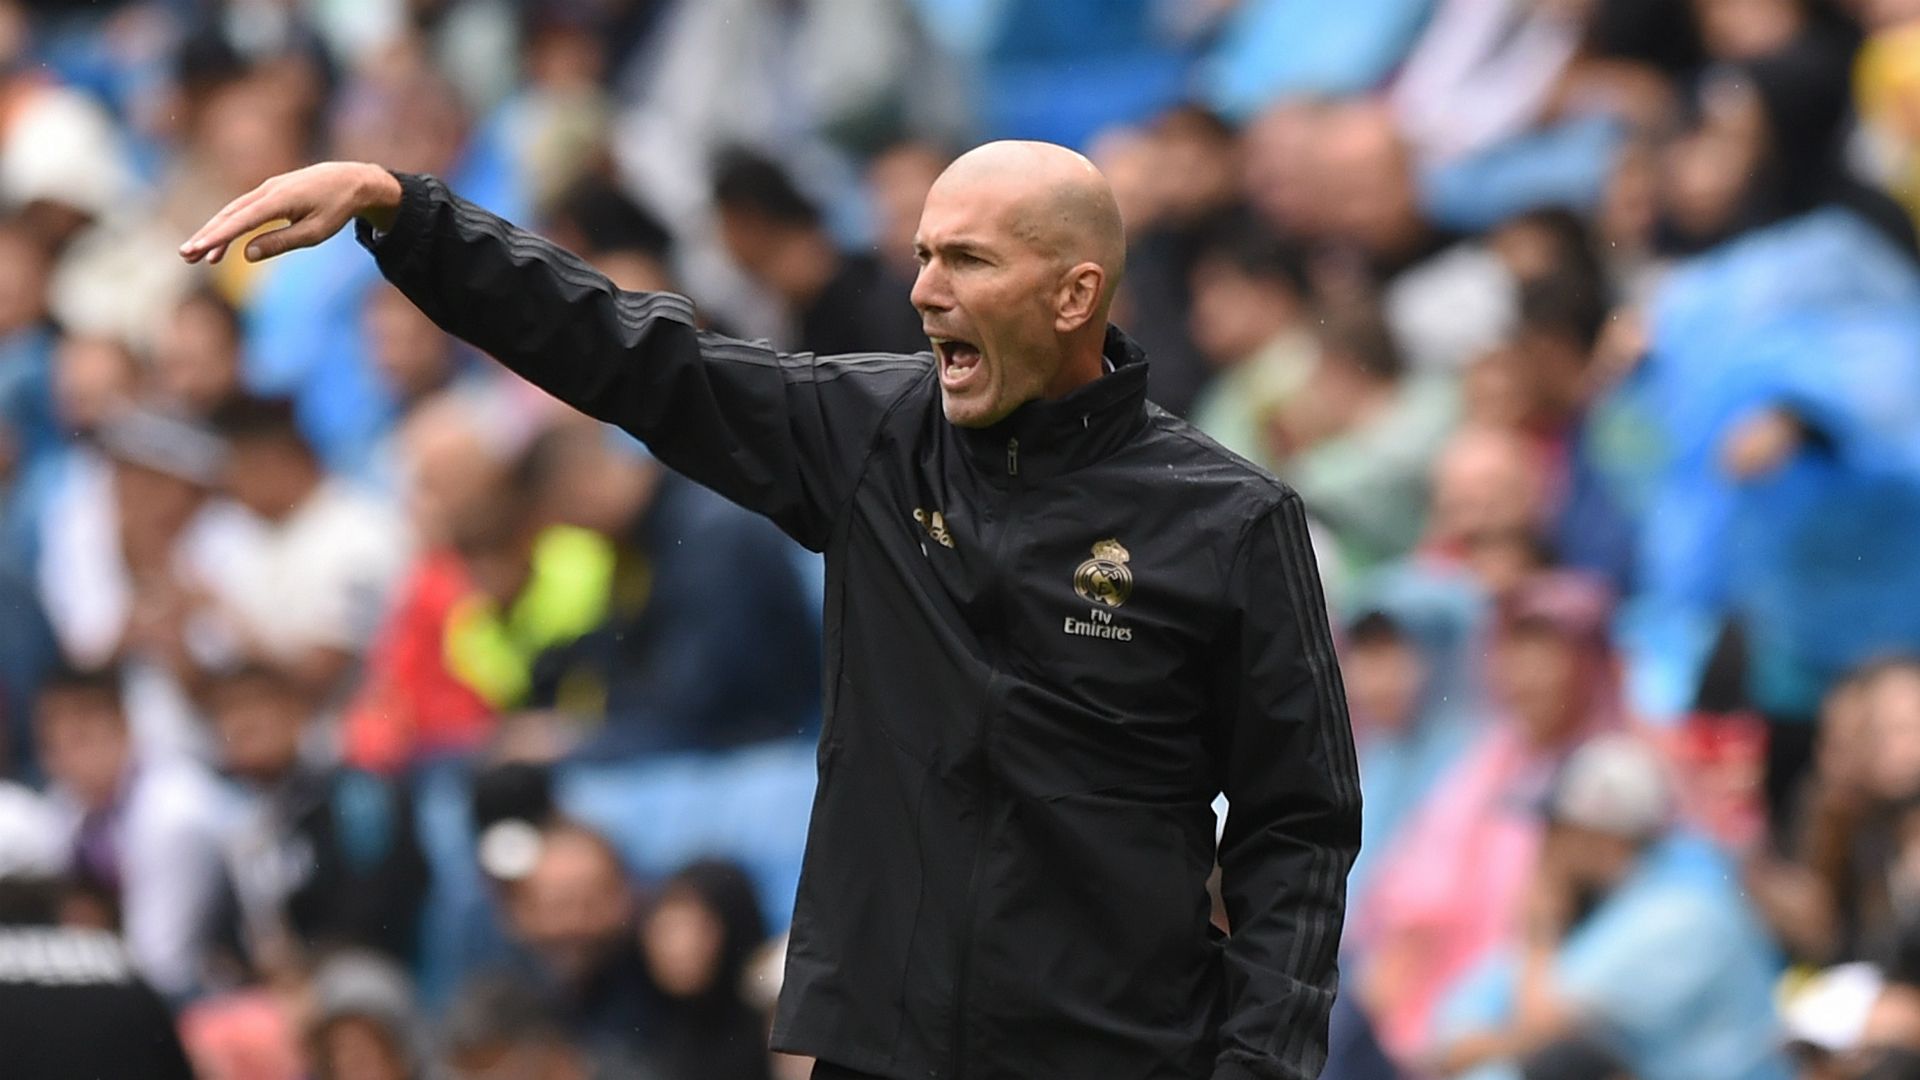 Kaka backs Real Madrid and 'unbelievable' Zidane to deliver trophies